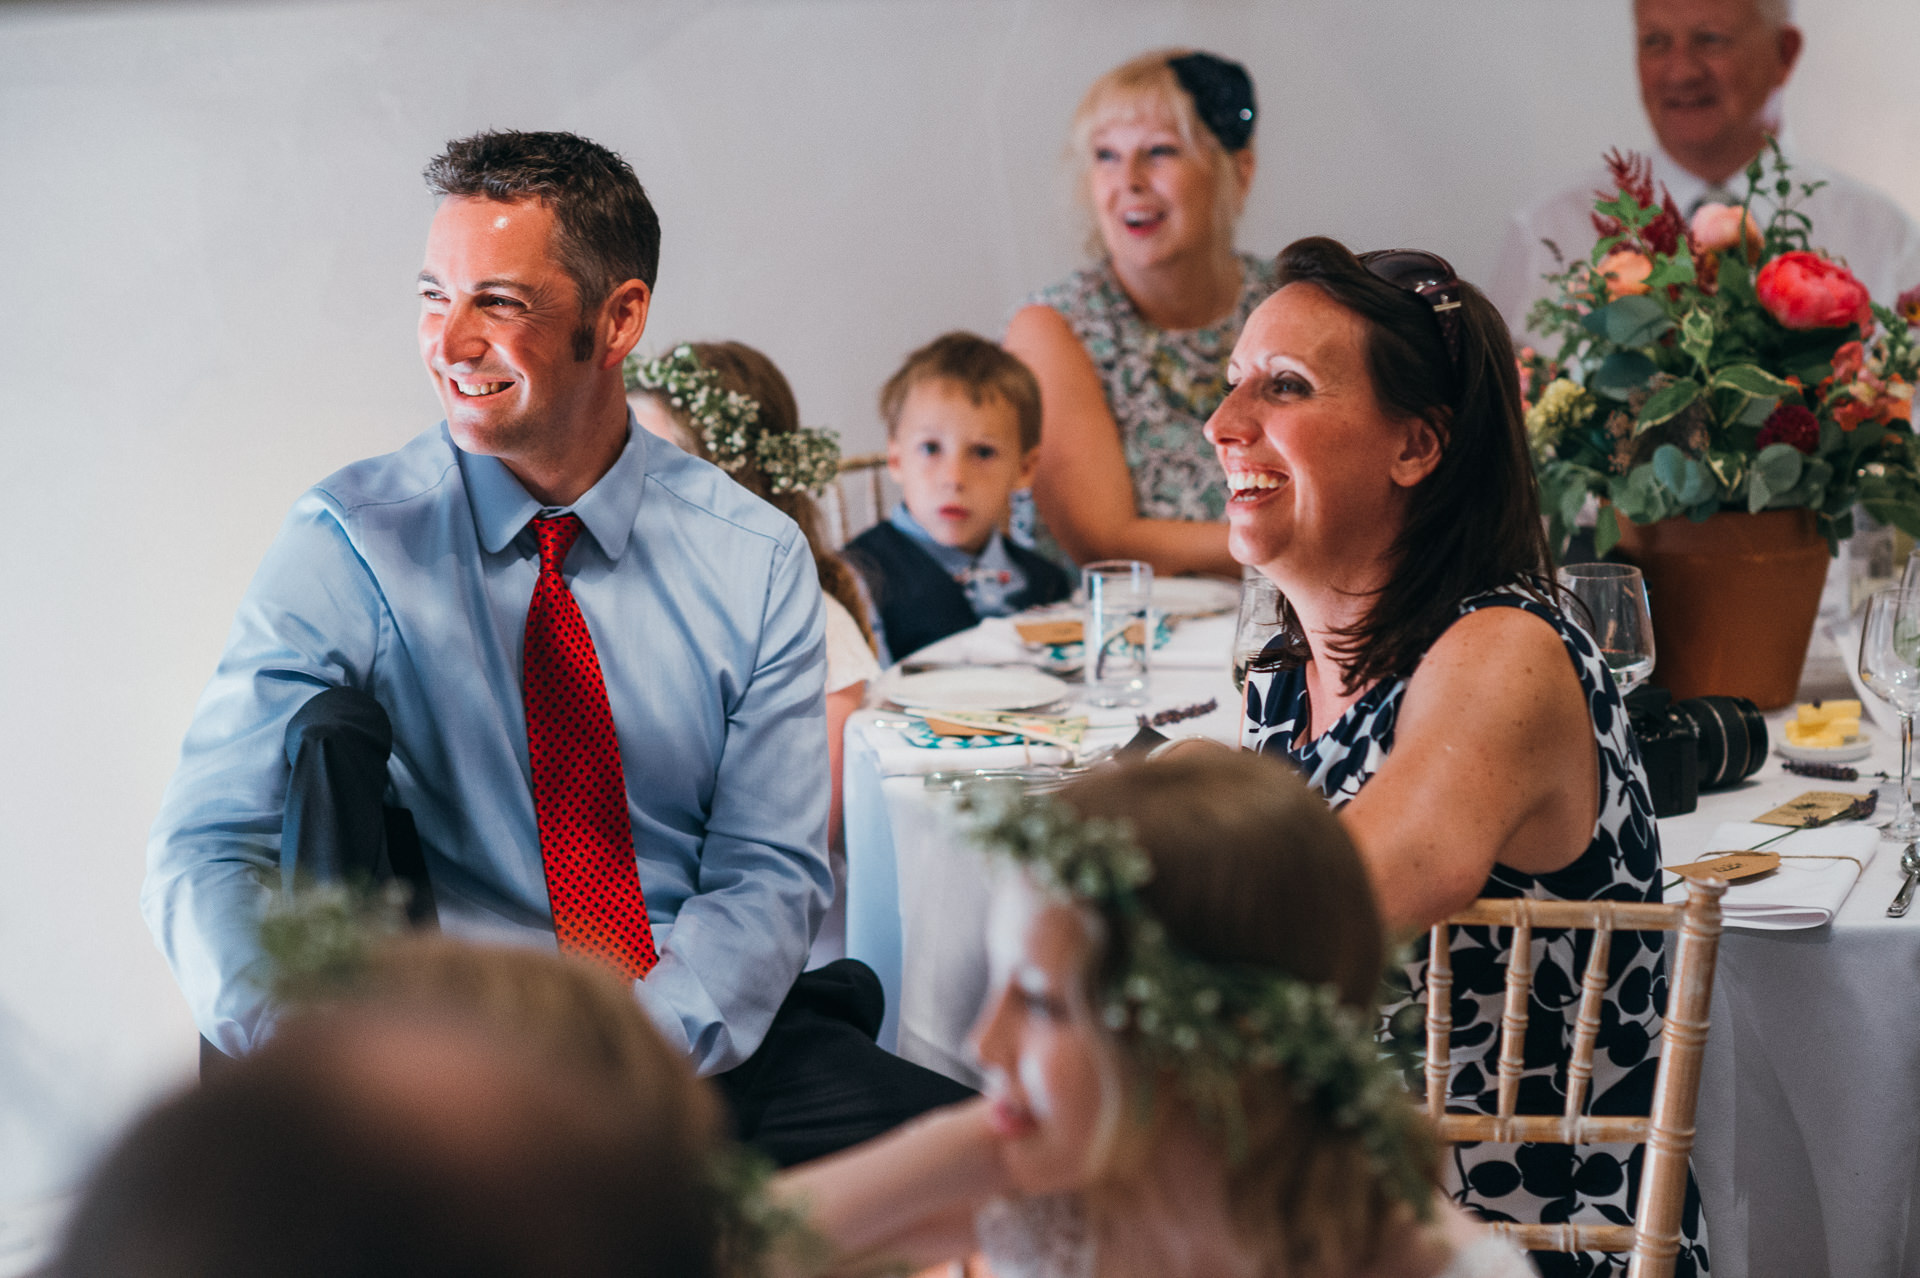 Guests listen to speeches at Pennard house wedding